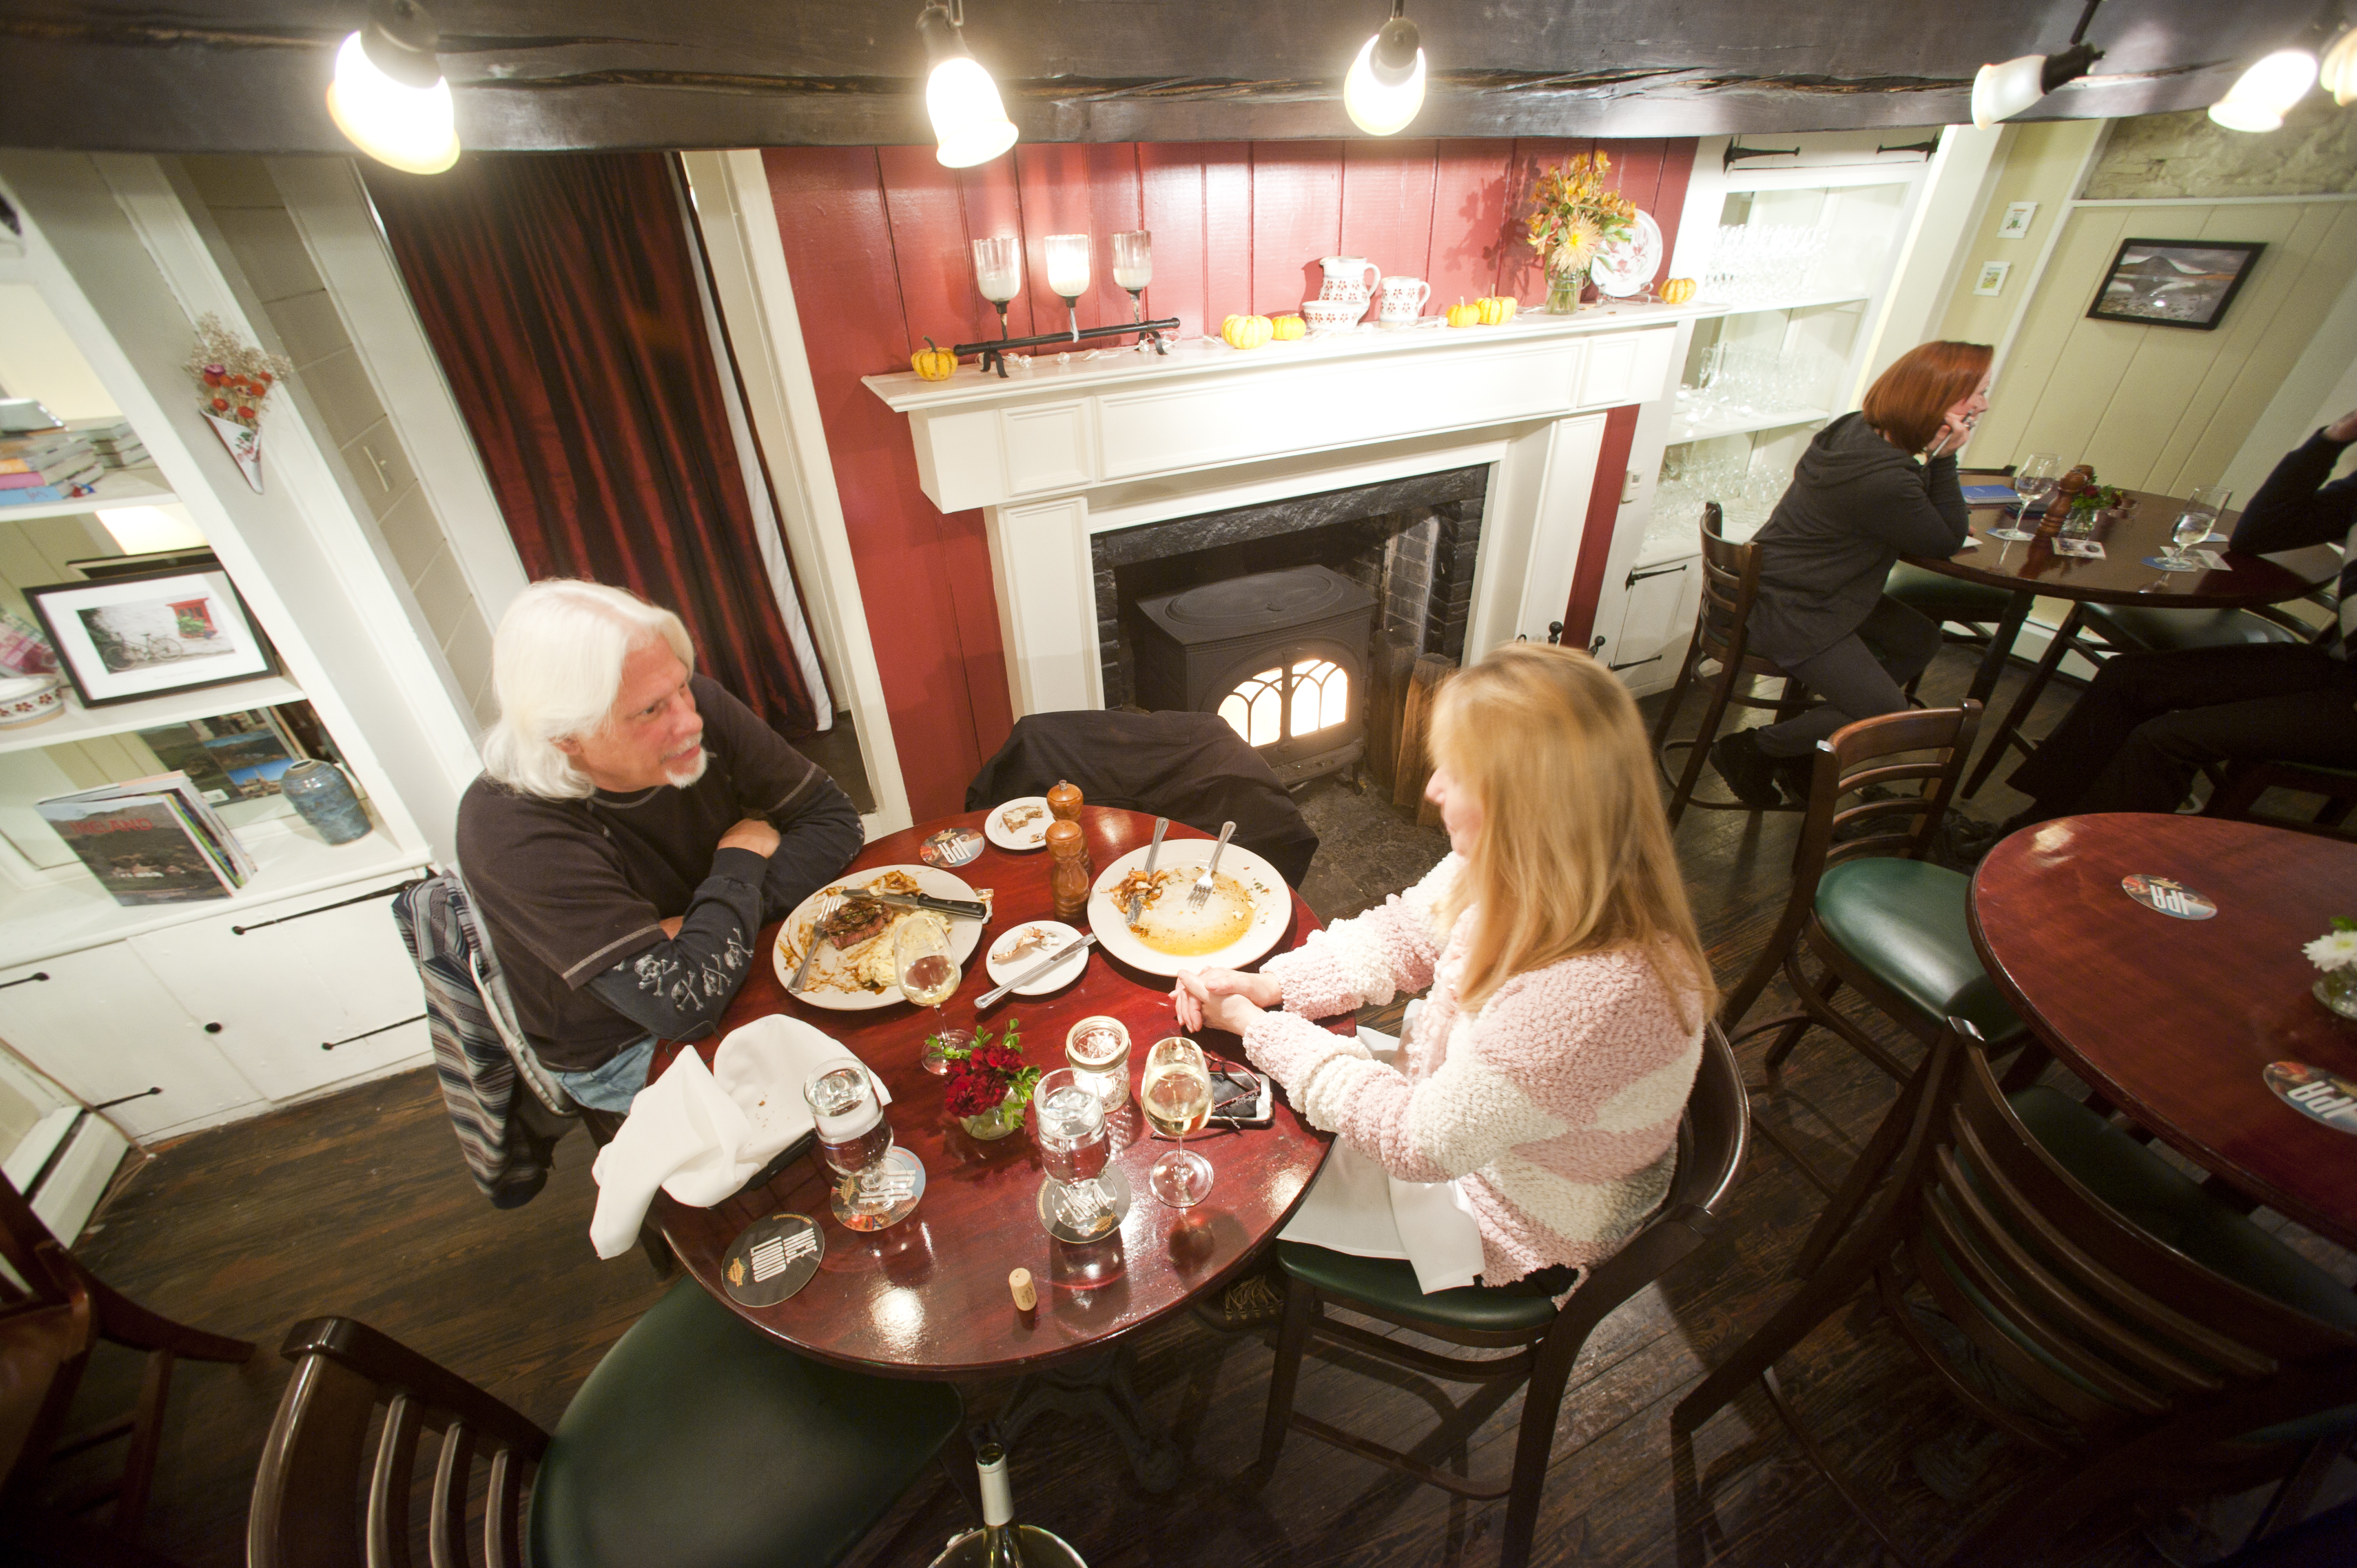 Dean and Daisy Read of New Paltz have dinner near the fire at Garvan's Gastropub in late October. Photo by Karl Rabe.